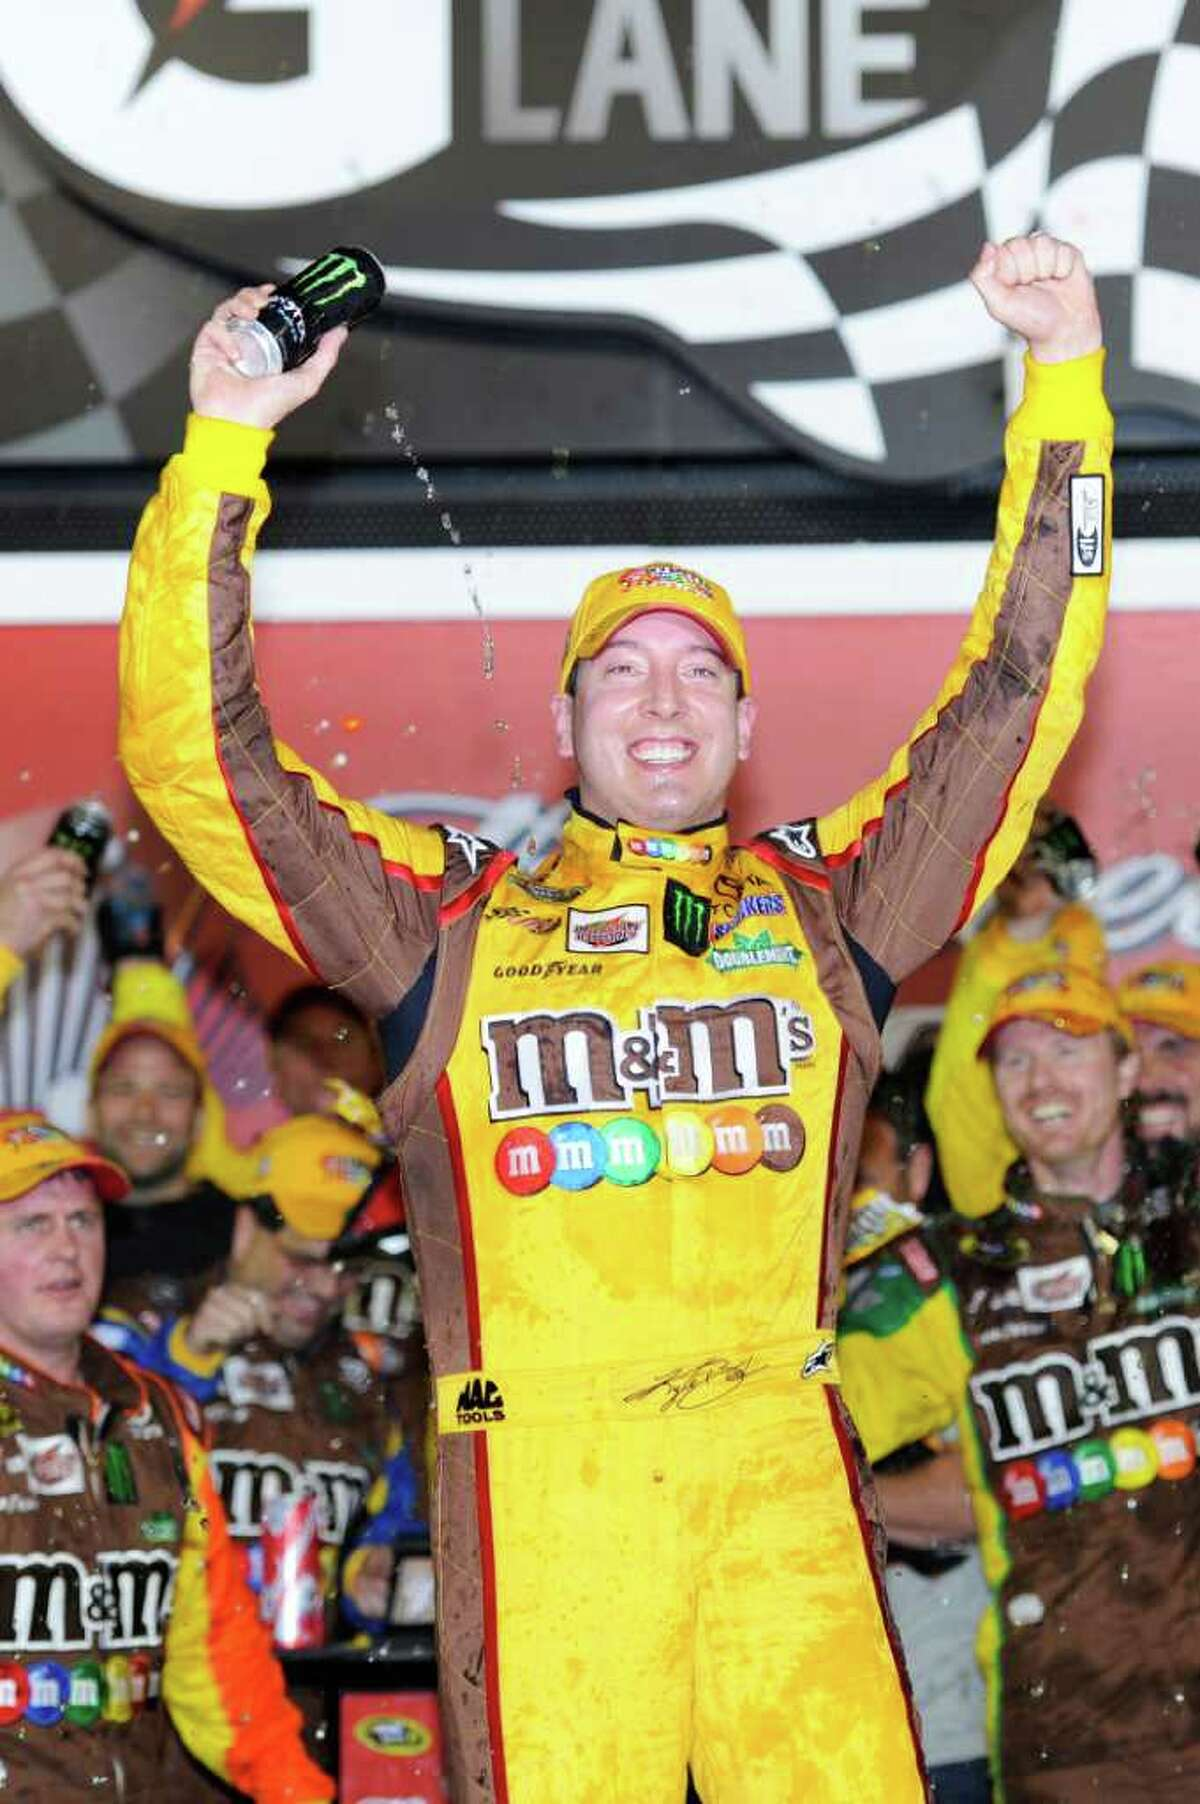 DAYTONA BEACH, FL - FEBRUARY 18: Kyle Busch, driver of the #18 M&M's Brown Toyota, celebrates in victory lane after winning the NASCAR Budweiser Shootout at Daytona International Speedway on February 18, 2012 in Daytona Beach, Florida. (Photo by John Harrelson/Getty Images for NASCAR)